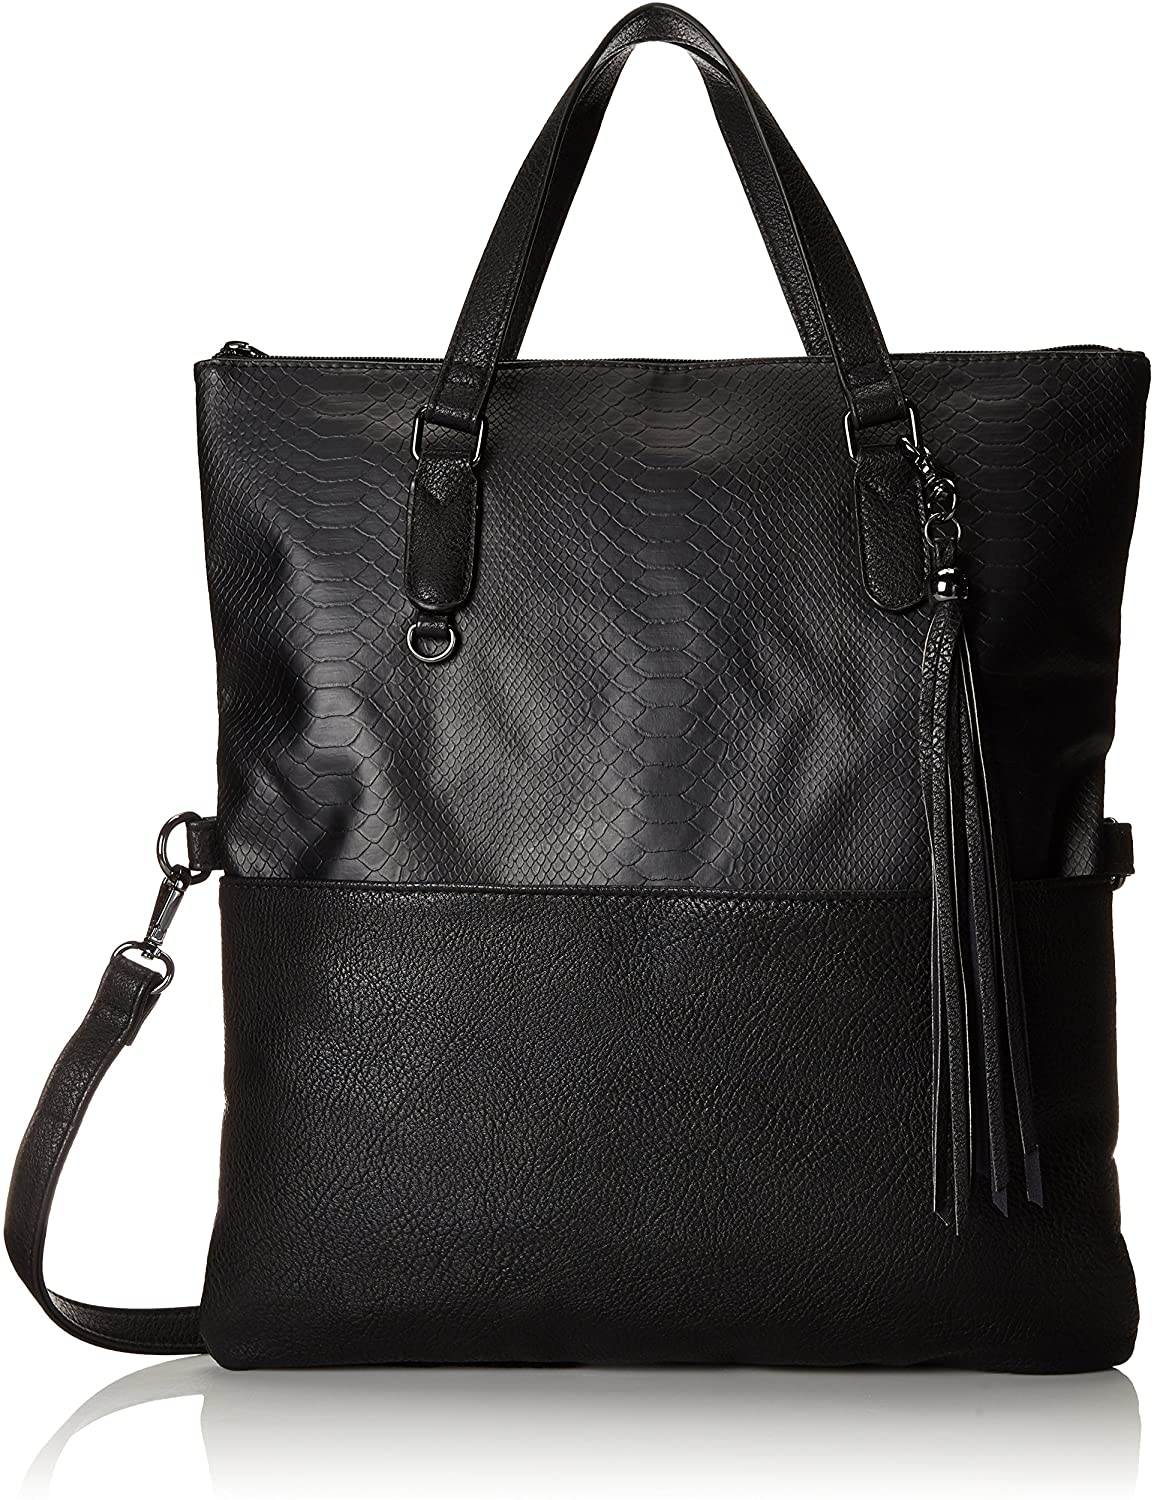 POVERTY FLATS by rian Reptilian Moderna Foldover Tote, Black, One Size  Clothing